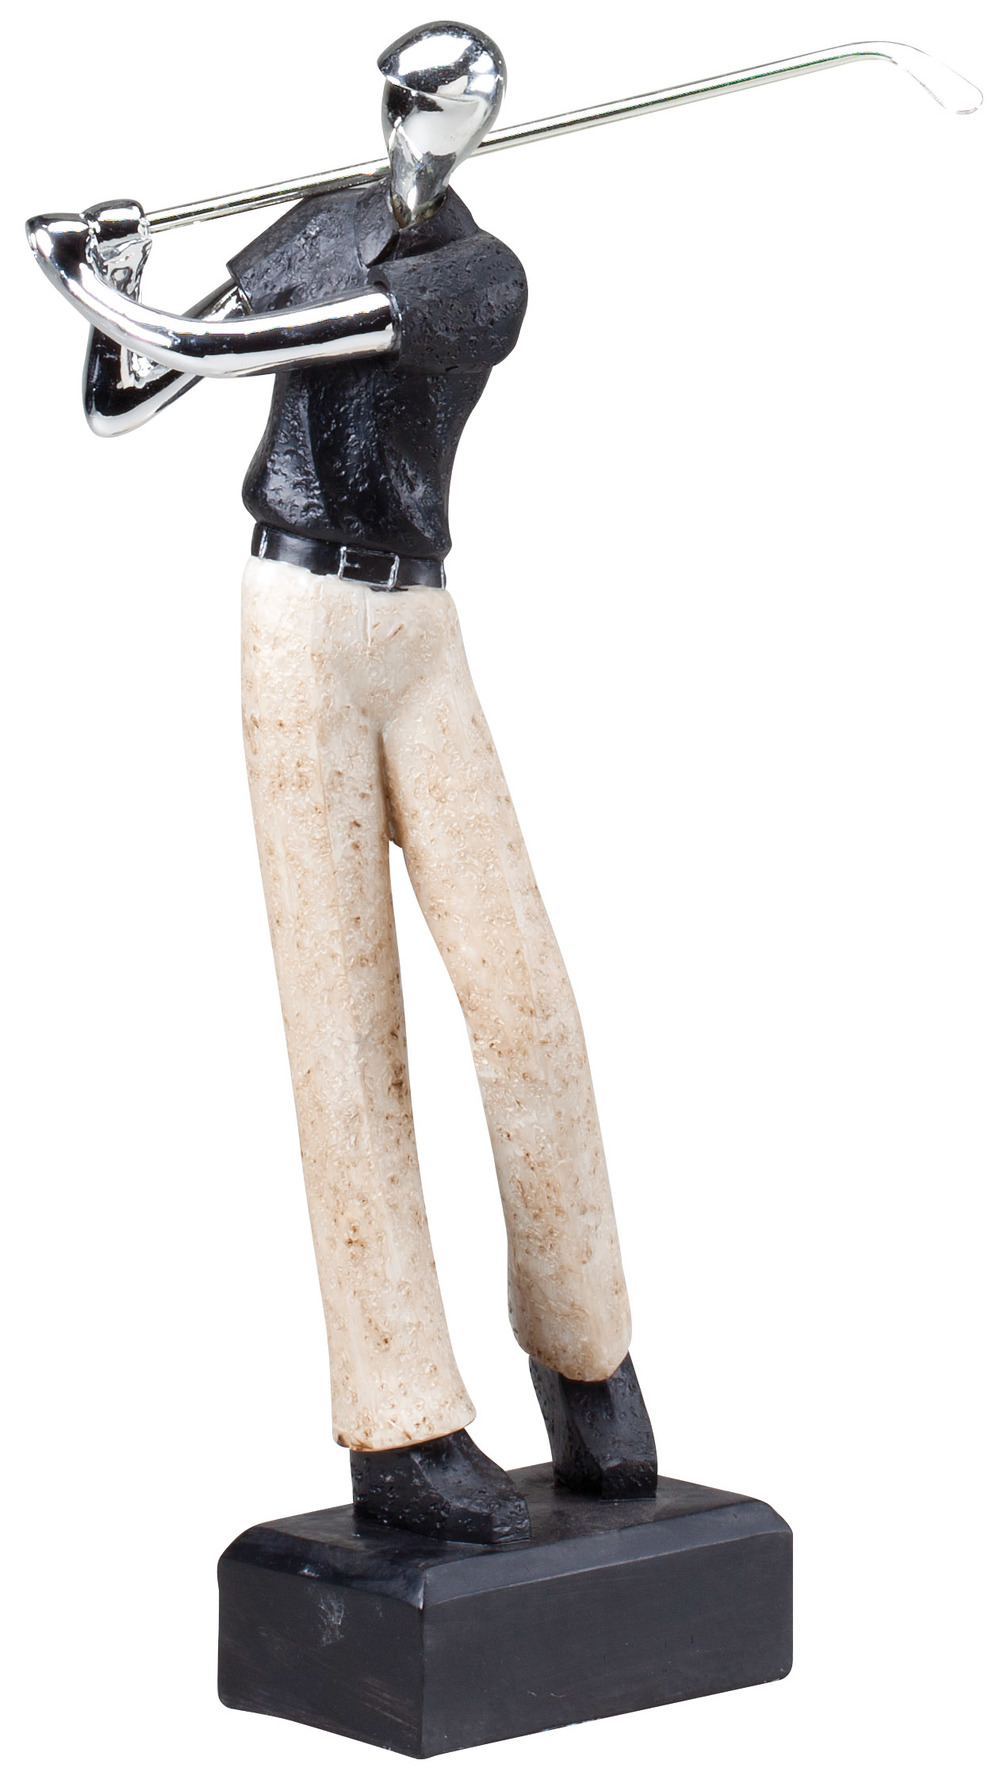 "Medium Resin - Male Golfer RF20744 - 12.5"" tall Price = $36"